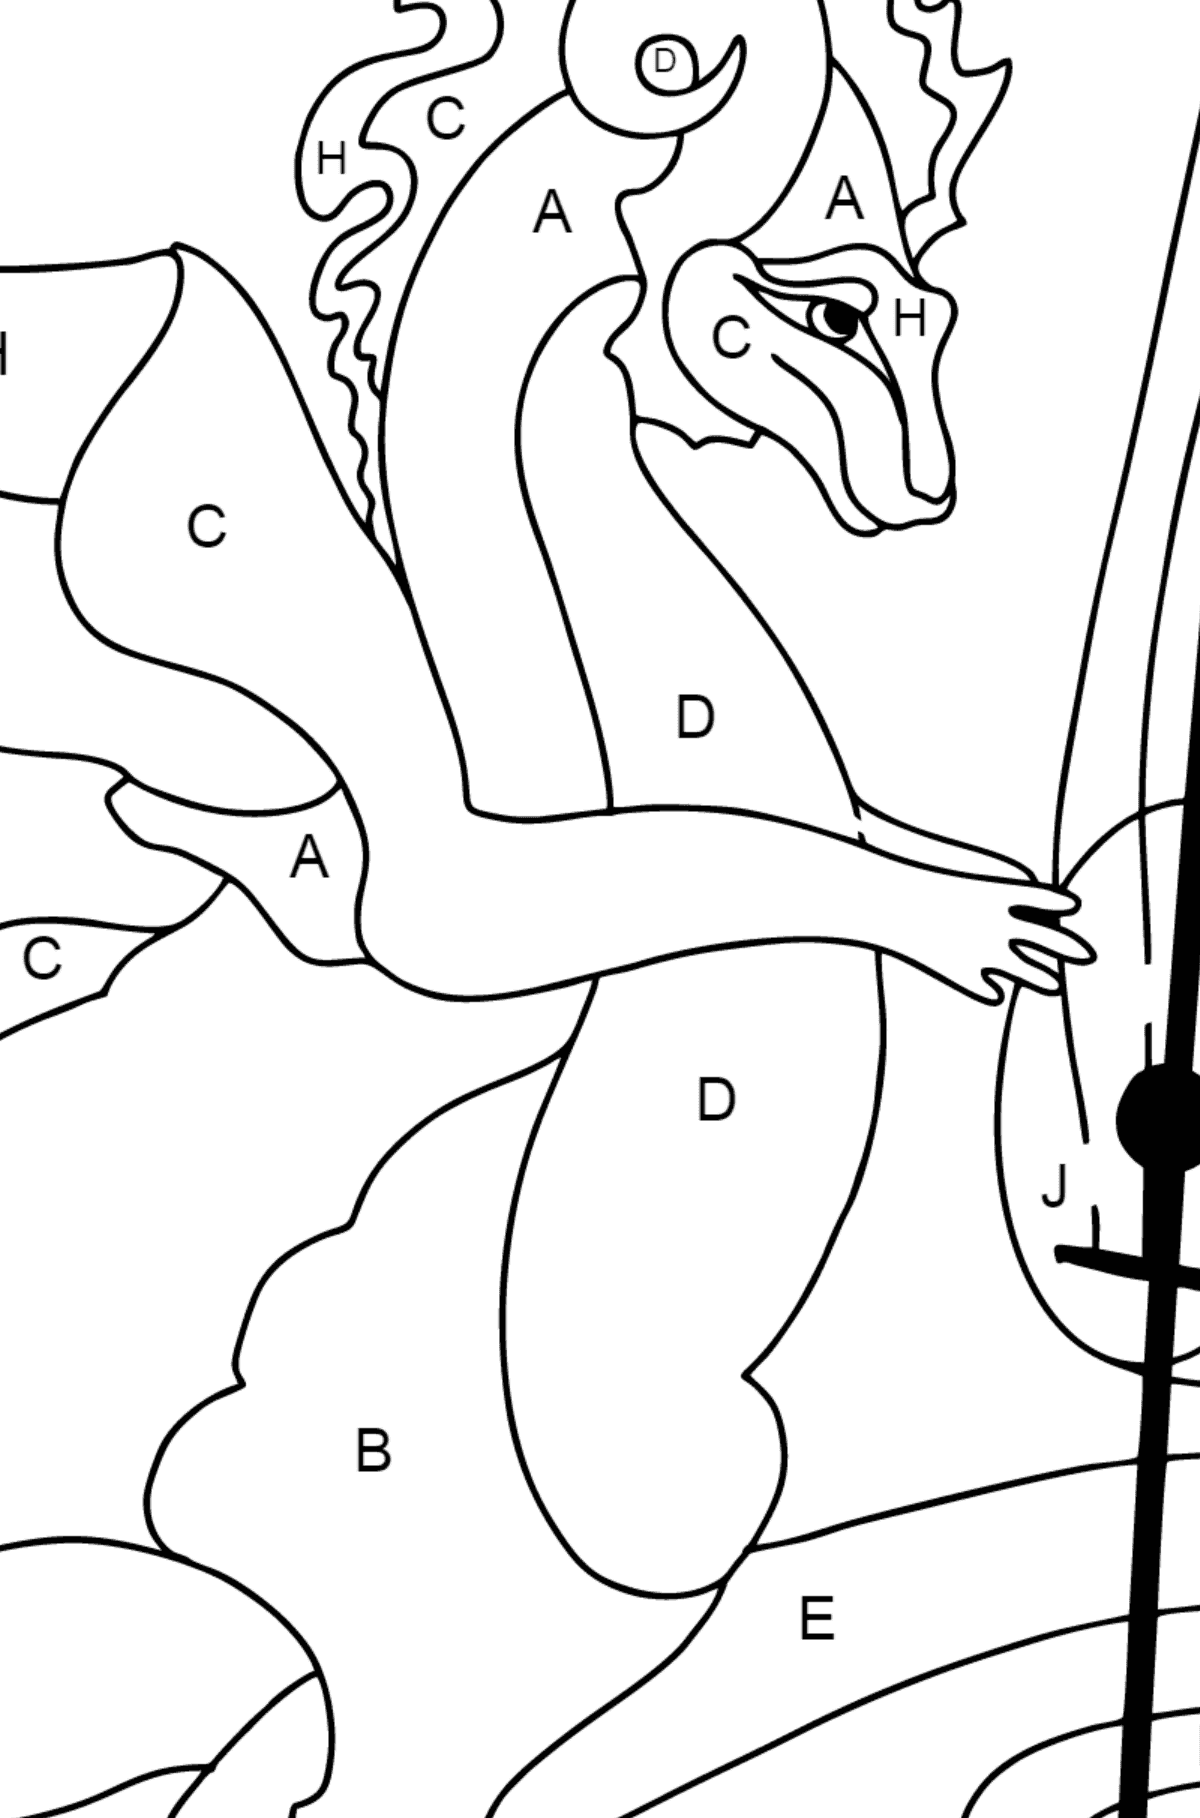 Coloring Page - A Dragon is Playing a Musical Instrument - Coloring by Letters for Children